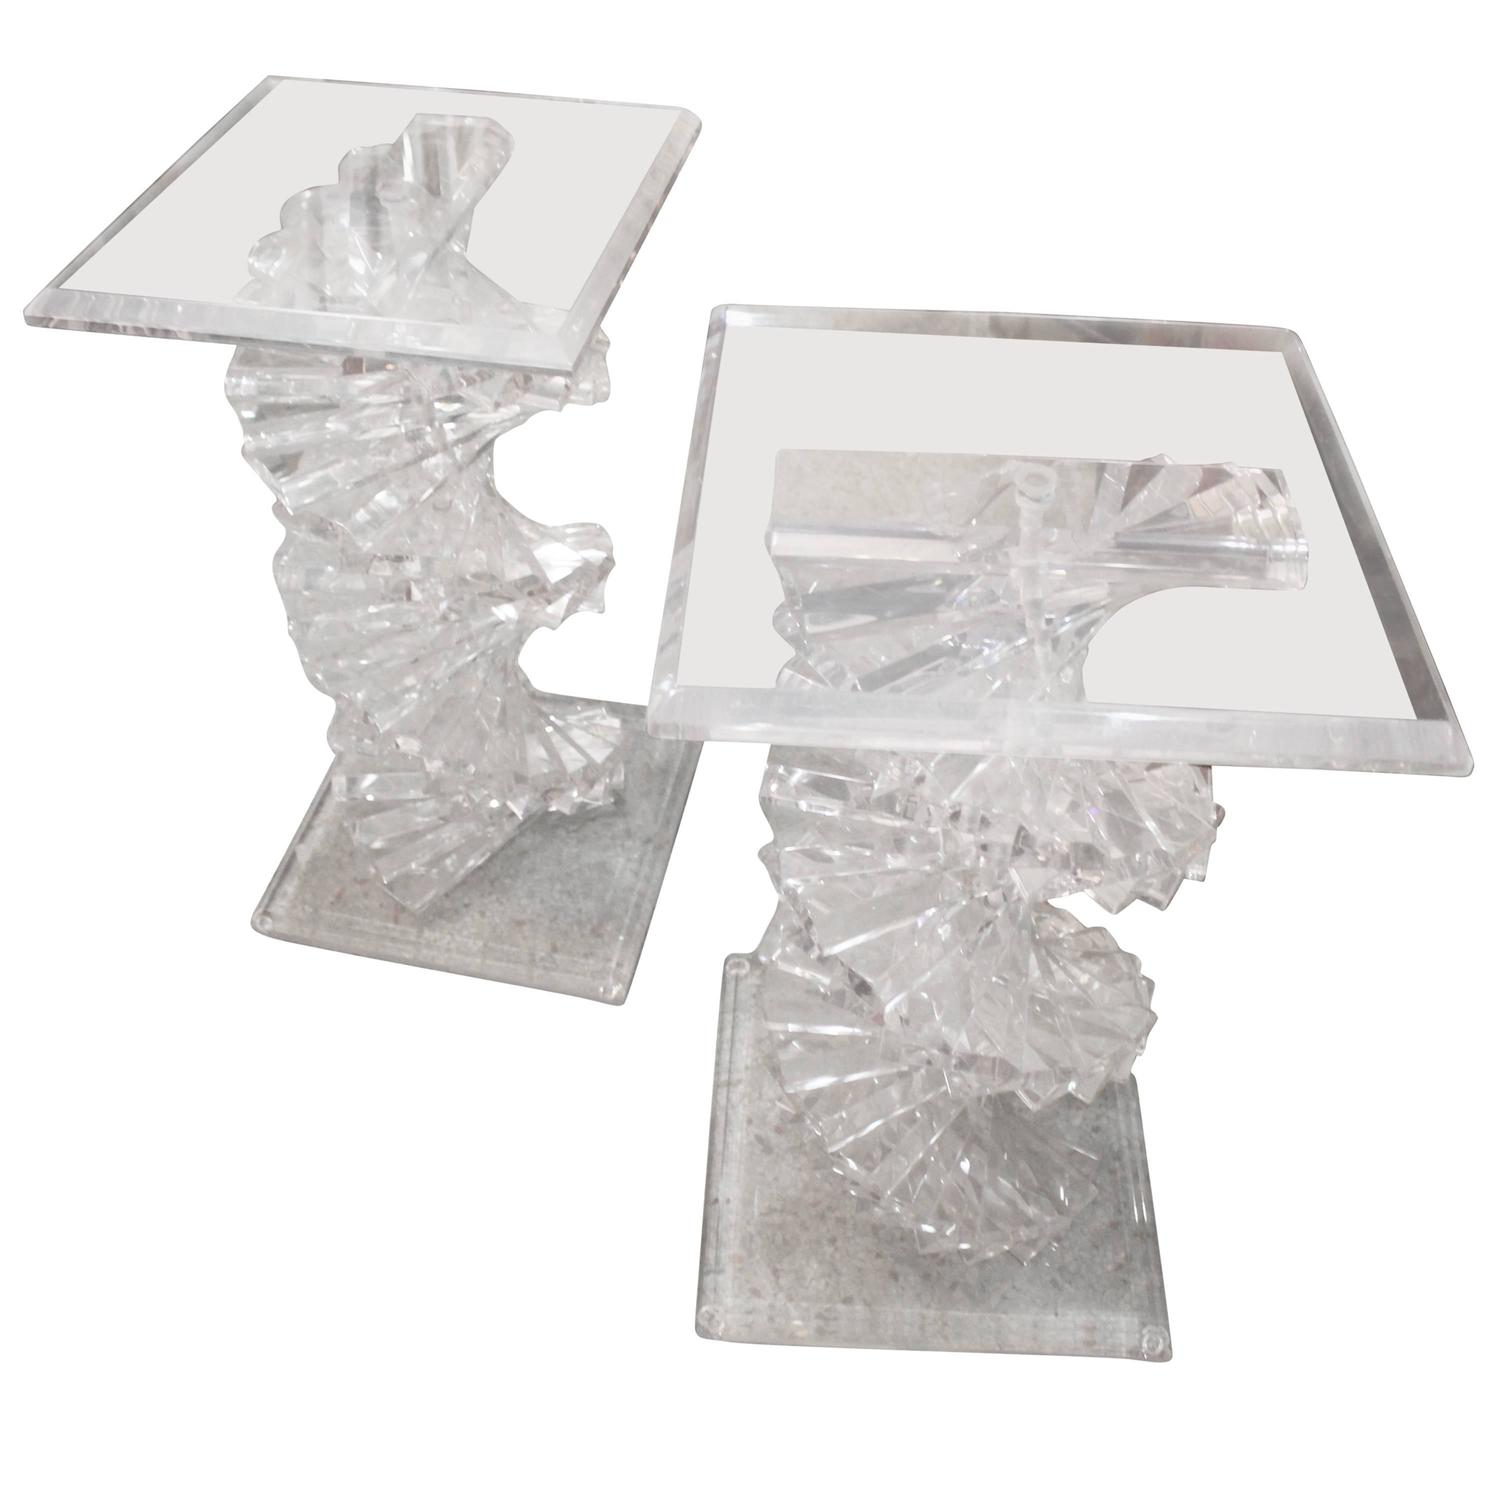 pair dna spiral lucite dining table desk console bases pedestals